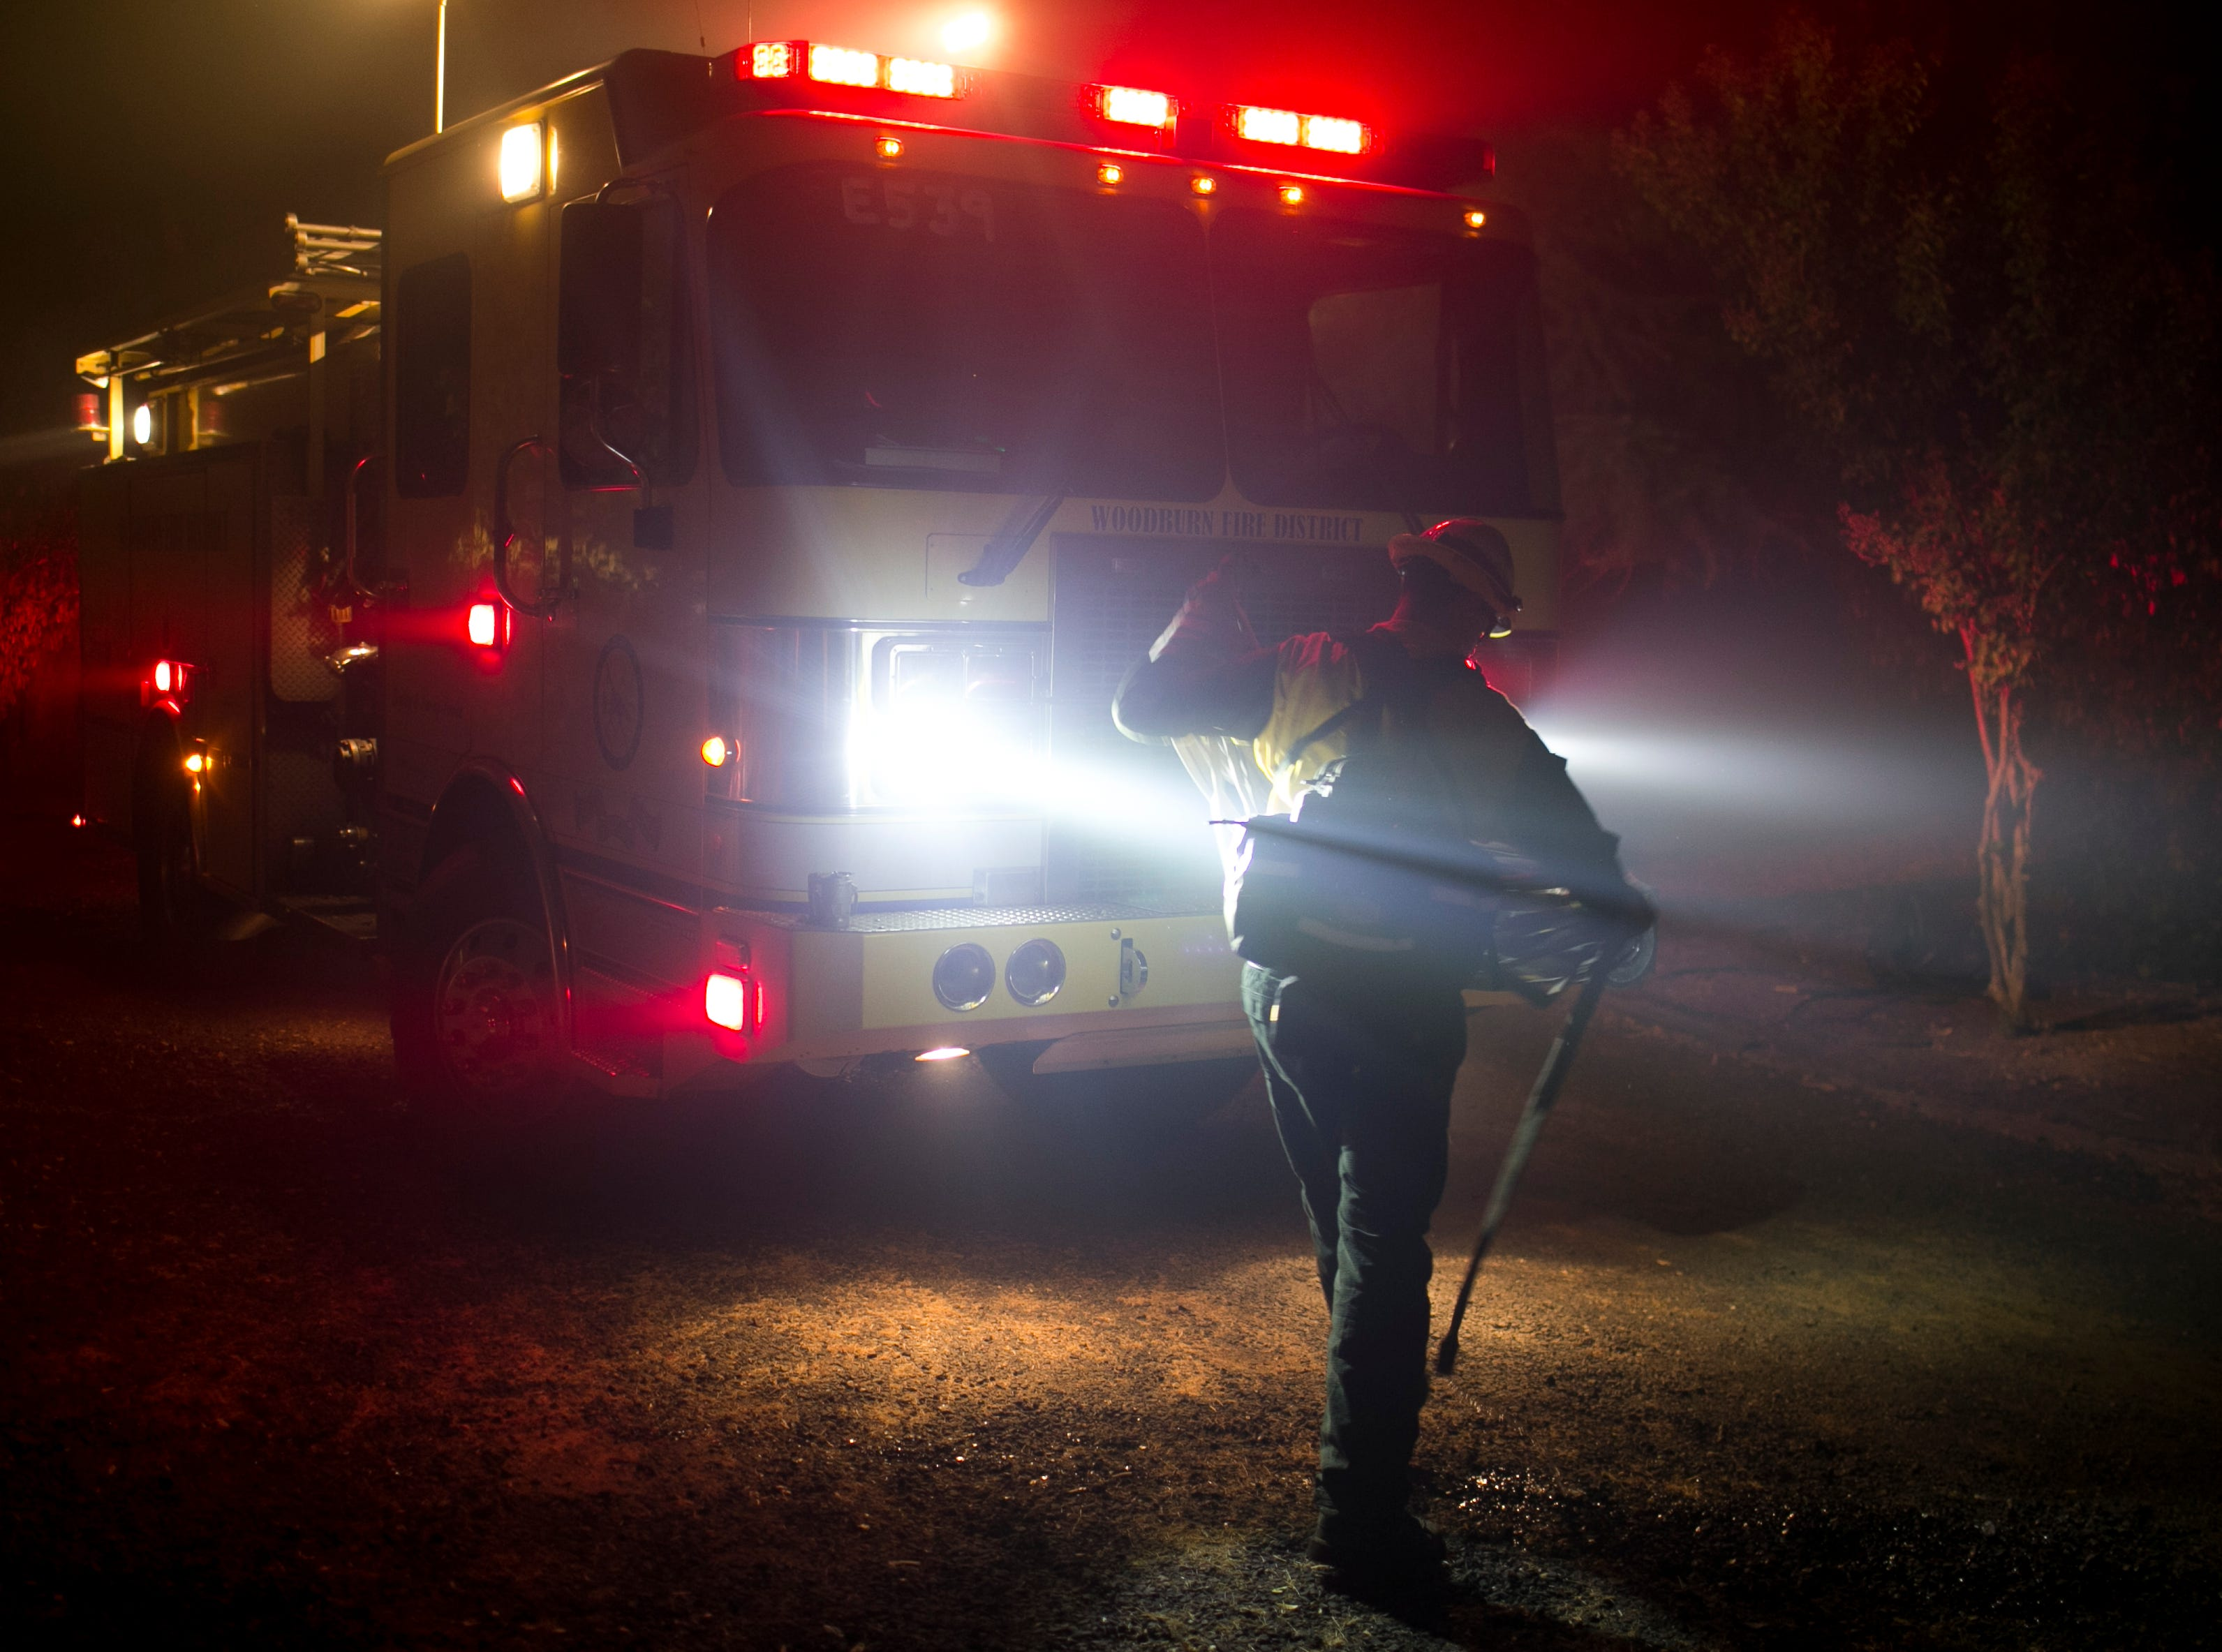 A fireman coils a firehose after helping put out a small fire during the Camp Fire on Nov. 12, in Butte Valley, Calif.